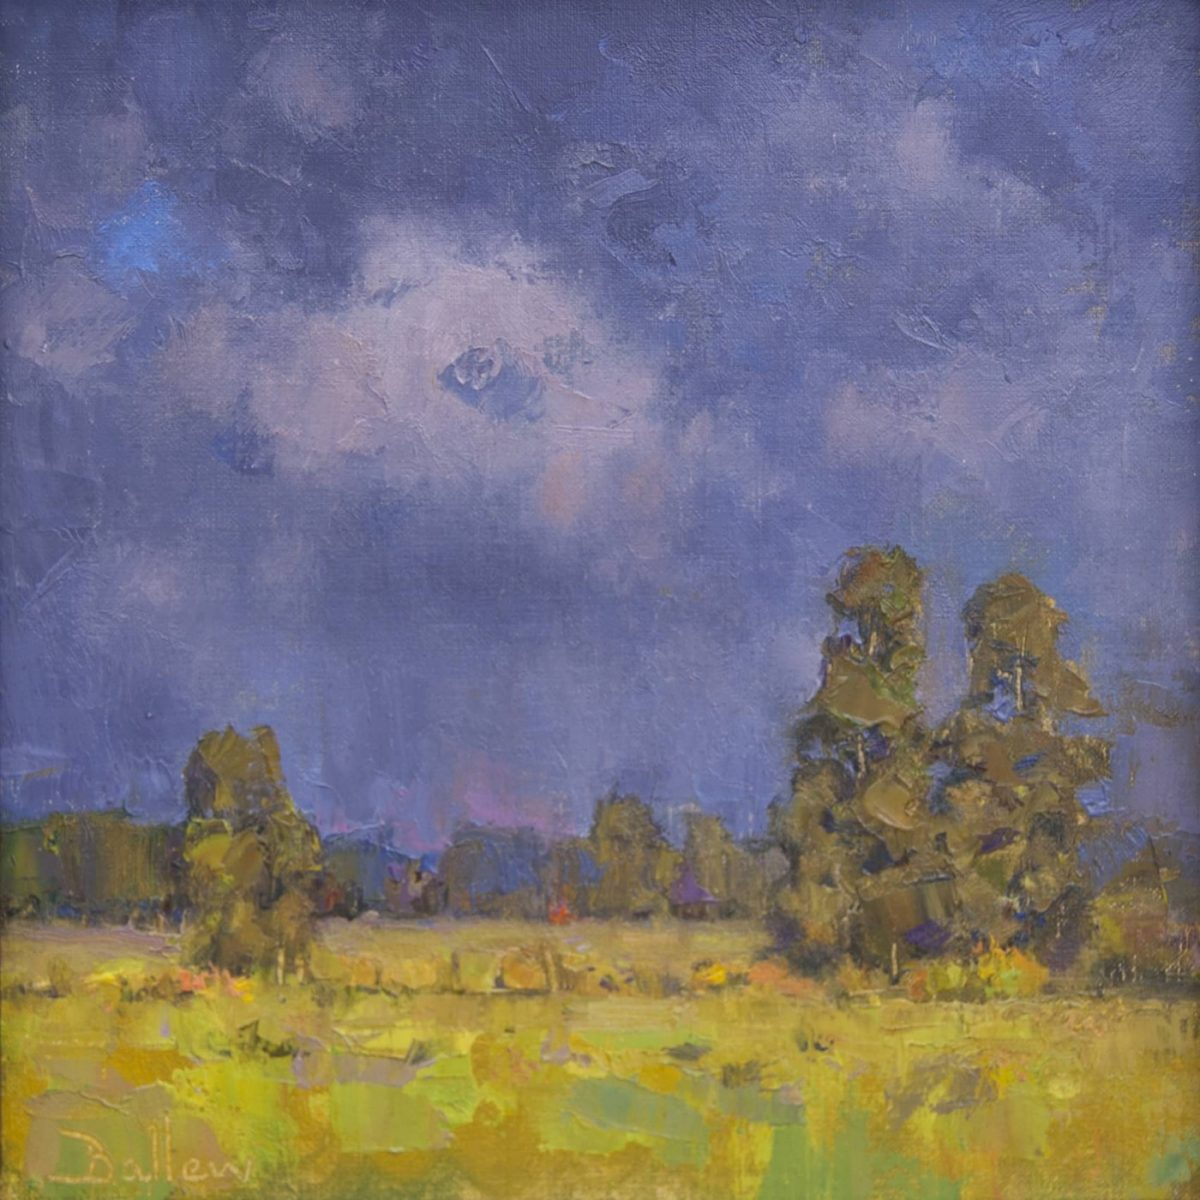 Passing Showers painting by David Ballew